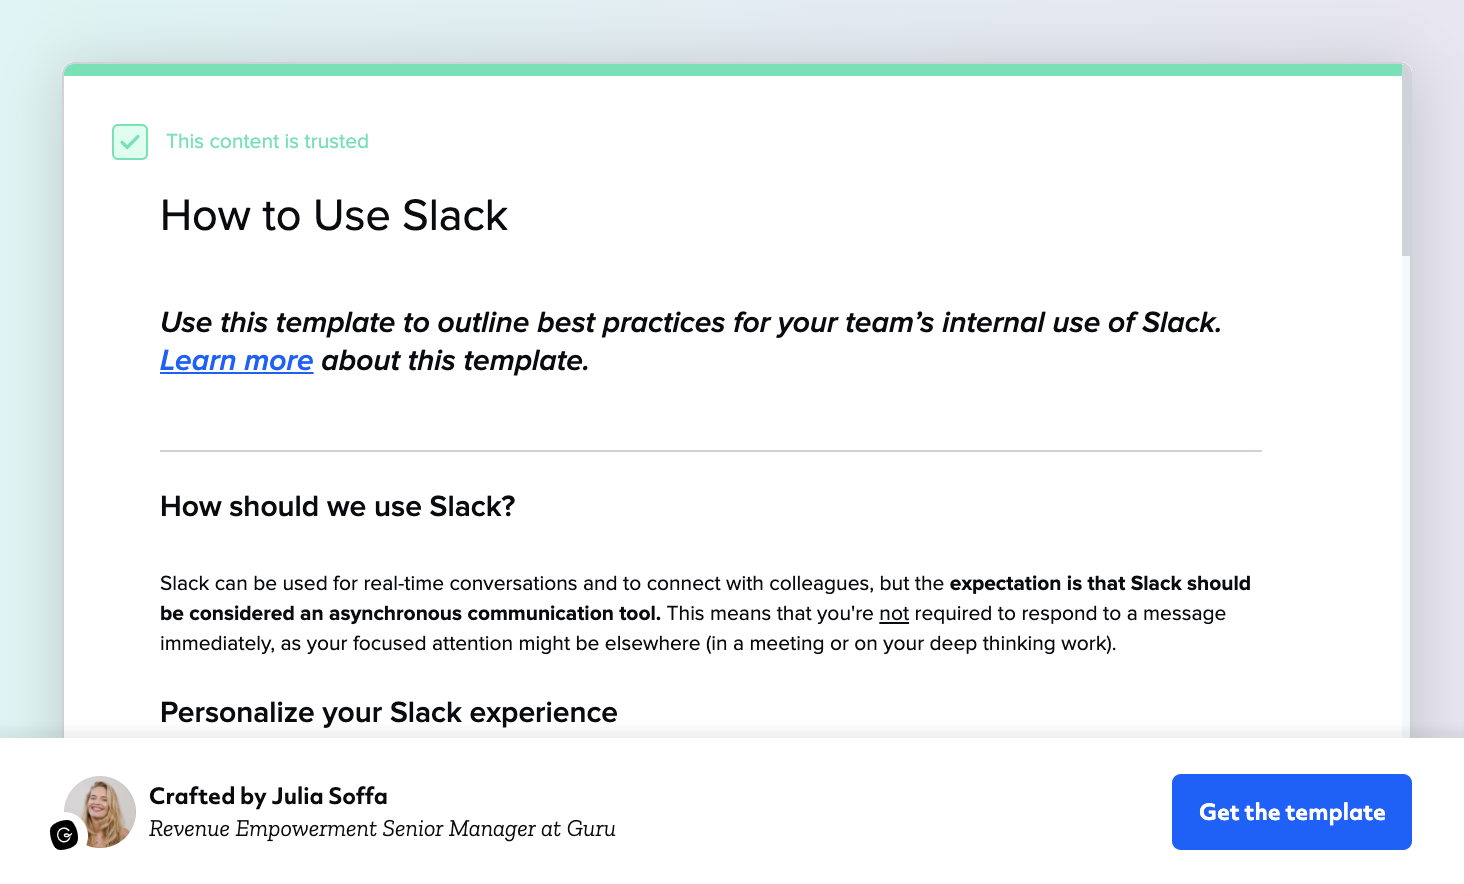 How to Use Slack Template